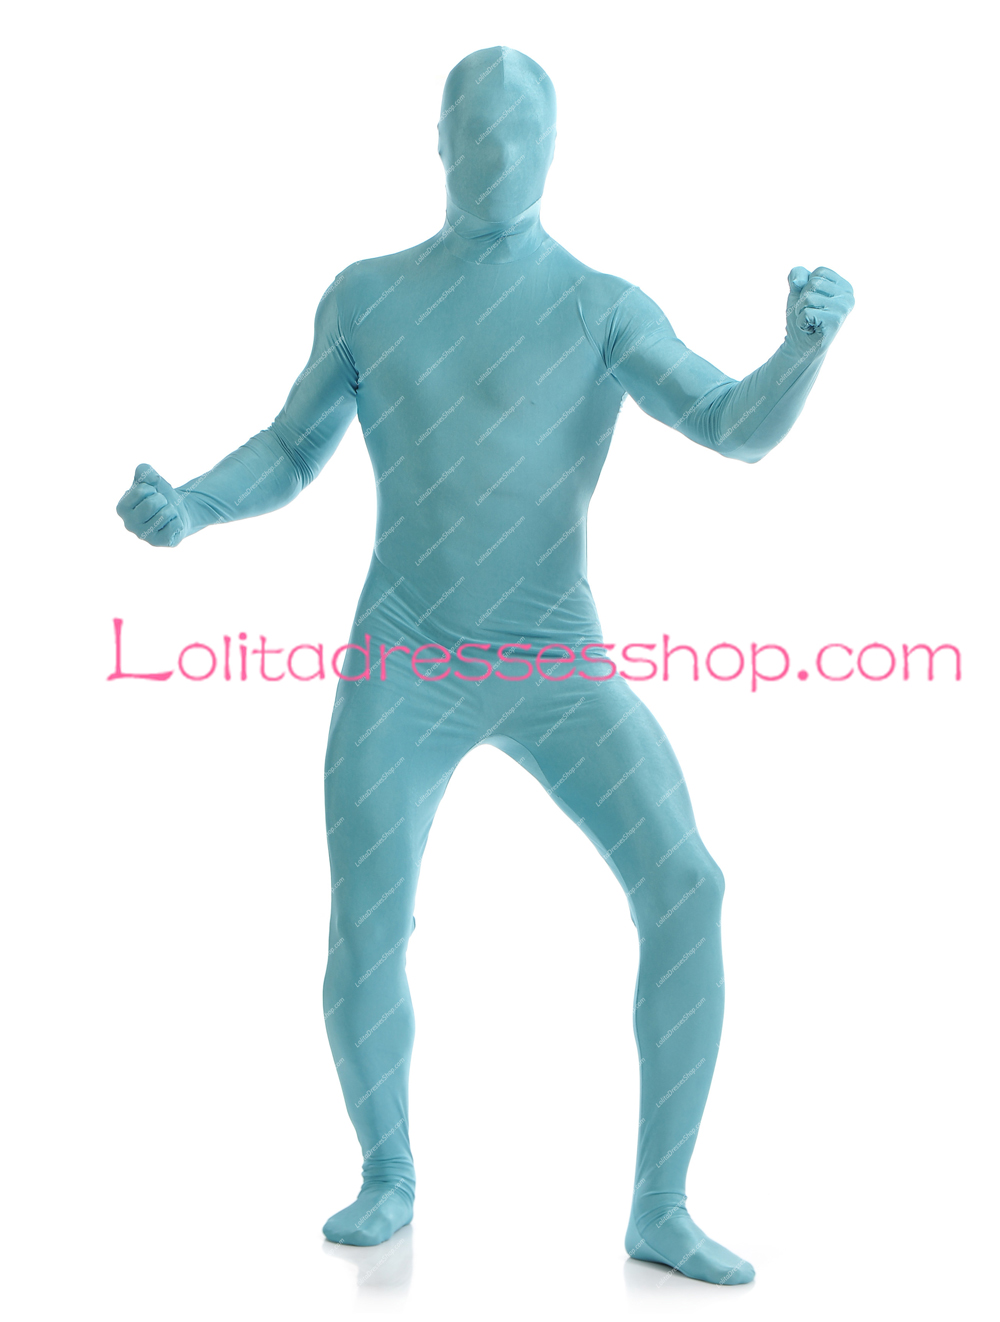 Bright Blue Color Blocking On One Wall And Ceiling: Cheap Bright Blue Color Spandex Full Body Unisex Zentai